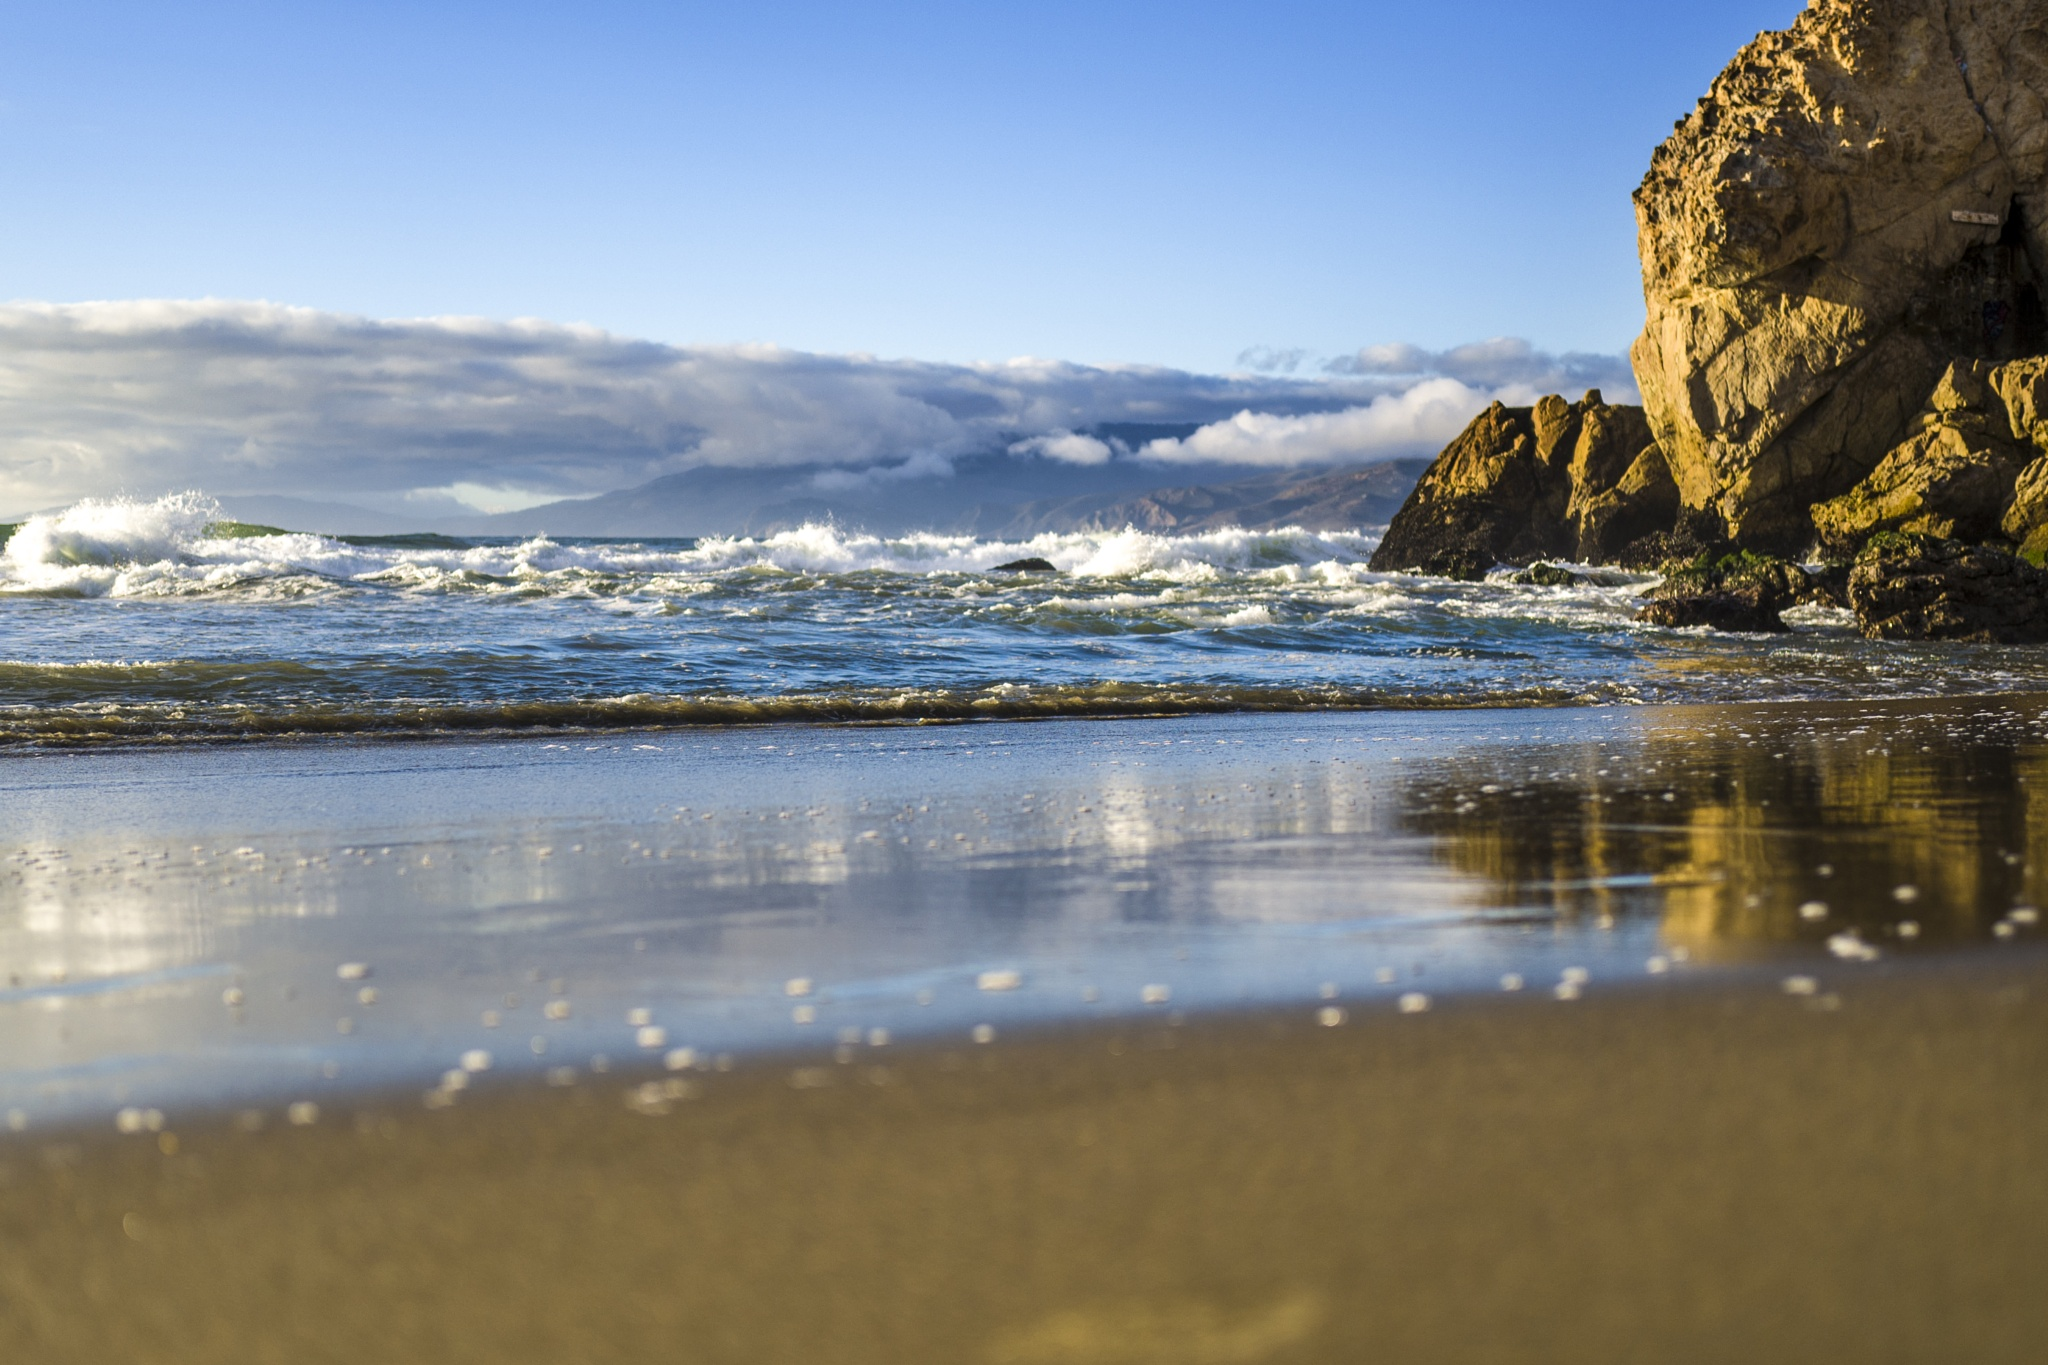 Sutro Baths NorCal by Number 1 Jedi